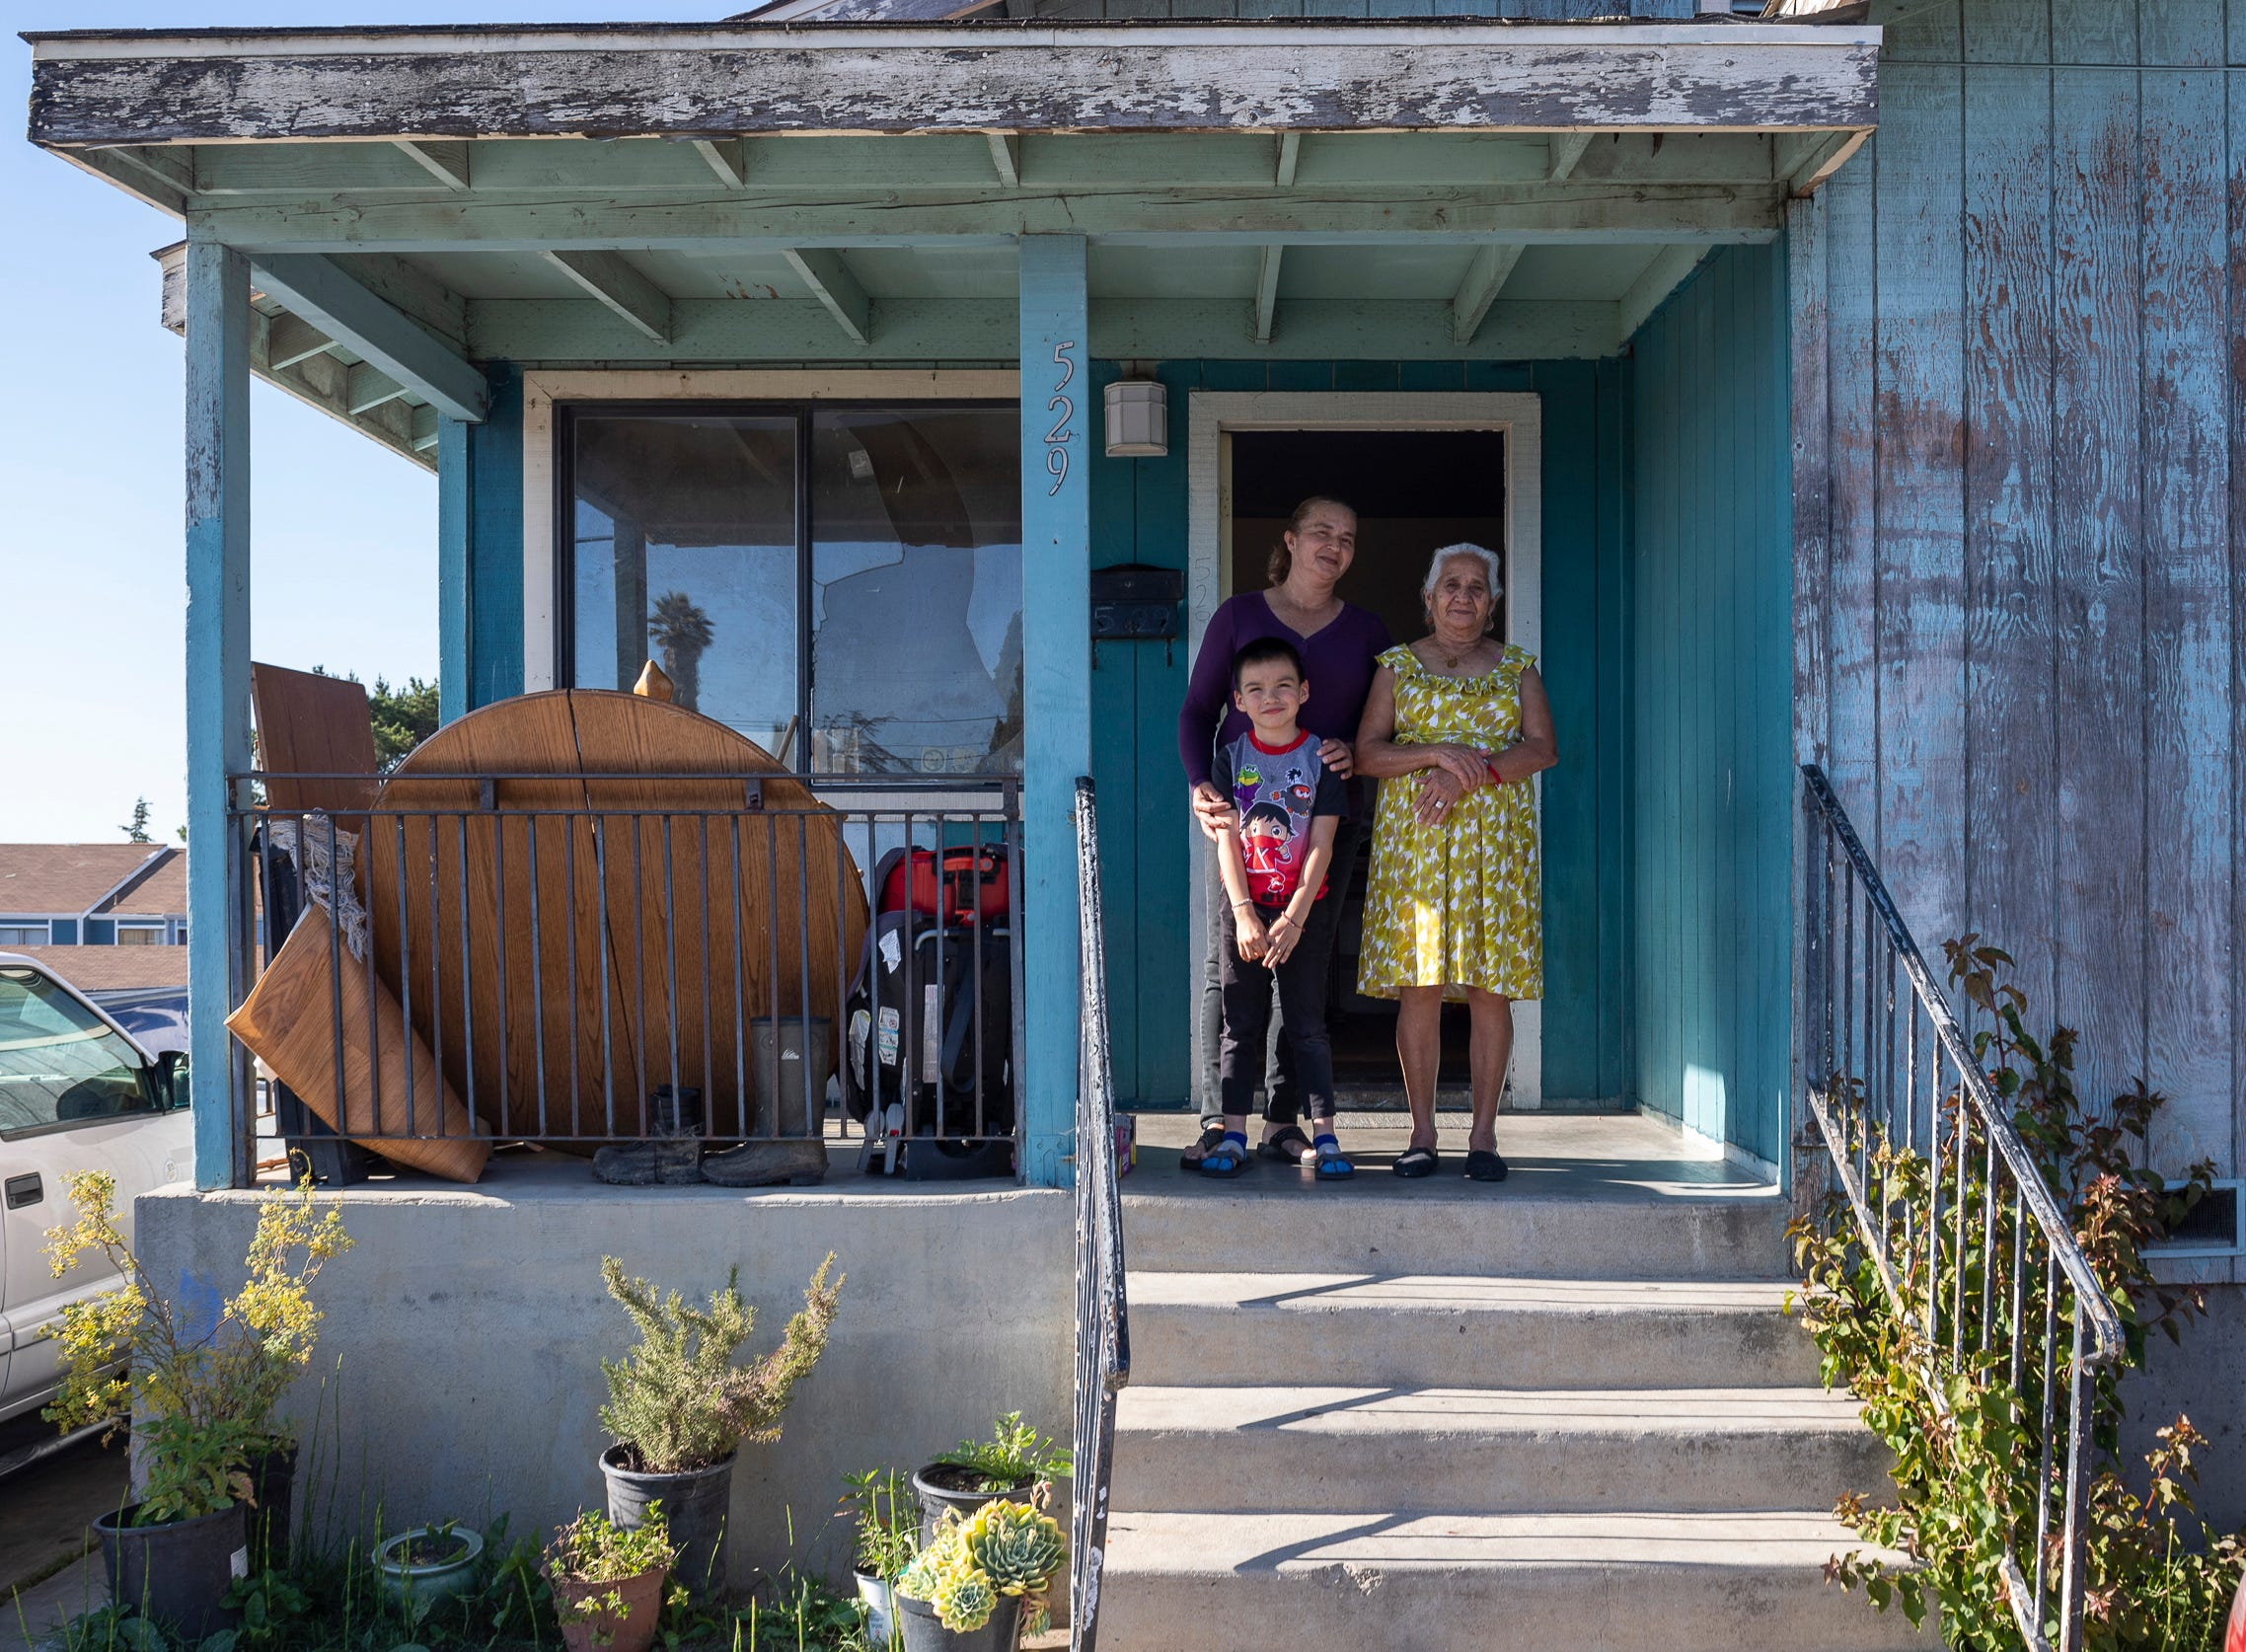 """Eufemia """"Jenni"""" Aguilar, 53, holds her grandson Kender, 6,  next to her mother, Barbara Rodriguez Ramos, 81, in front of the house where they rent one small bedroom. After living with Aguilar and Kender for three months, Ramos moved to Texas with her son."""